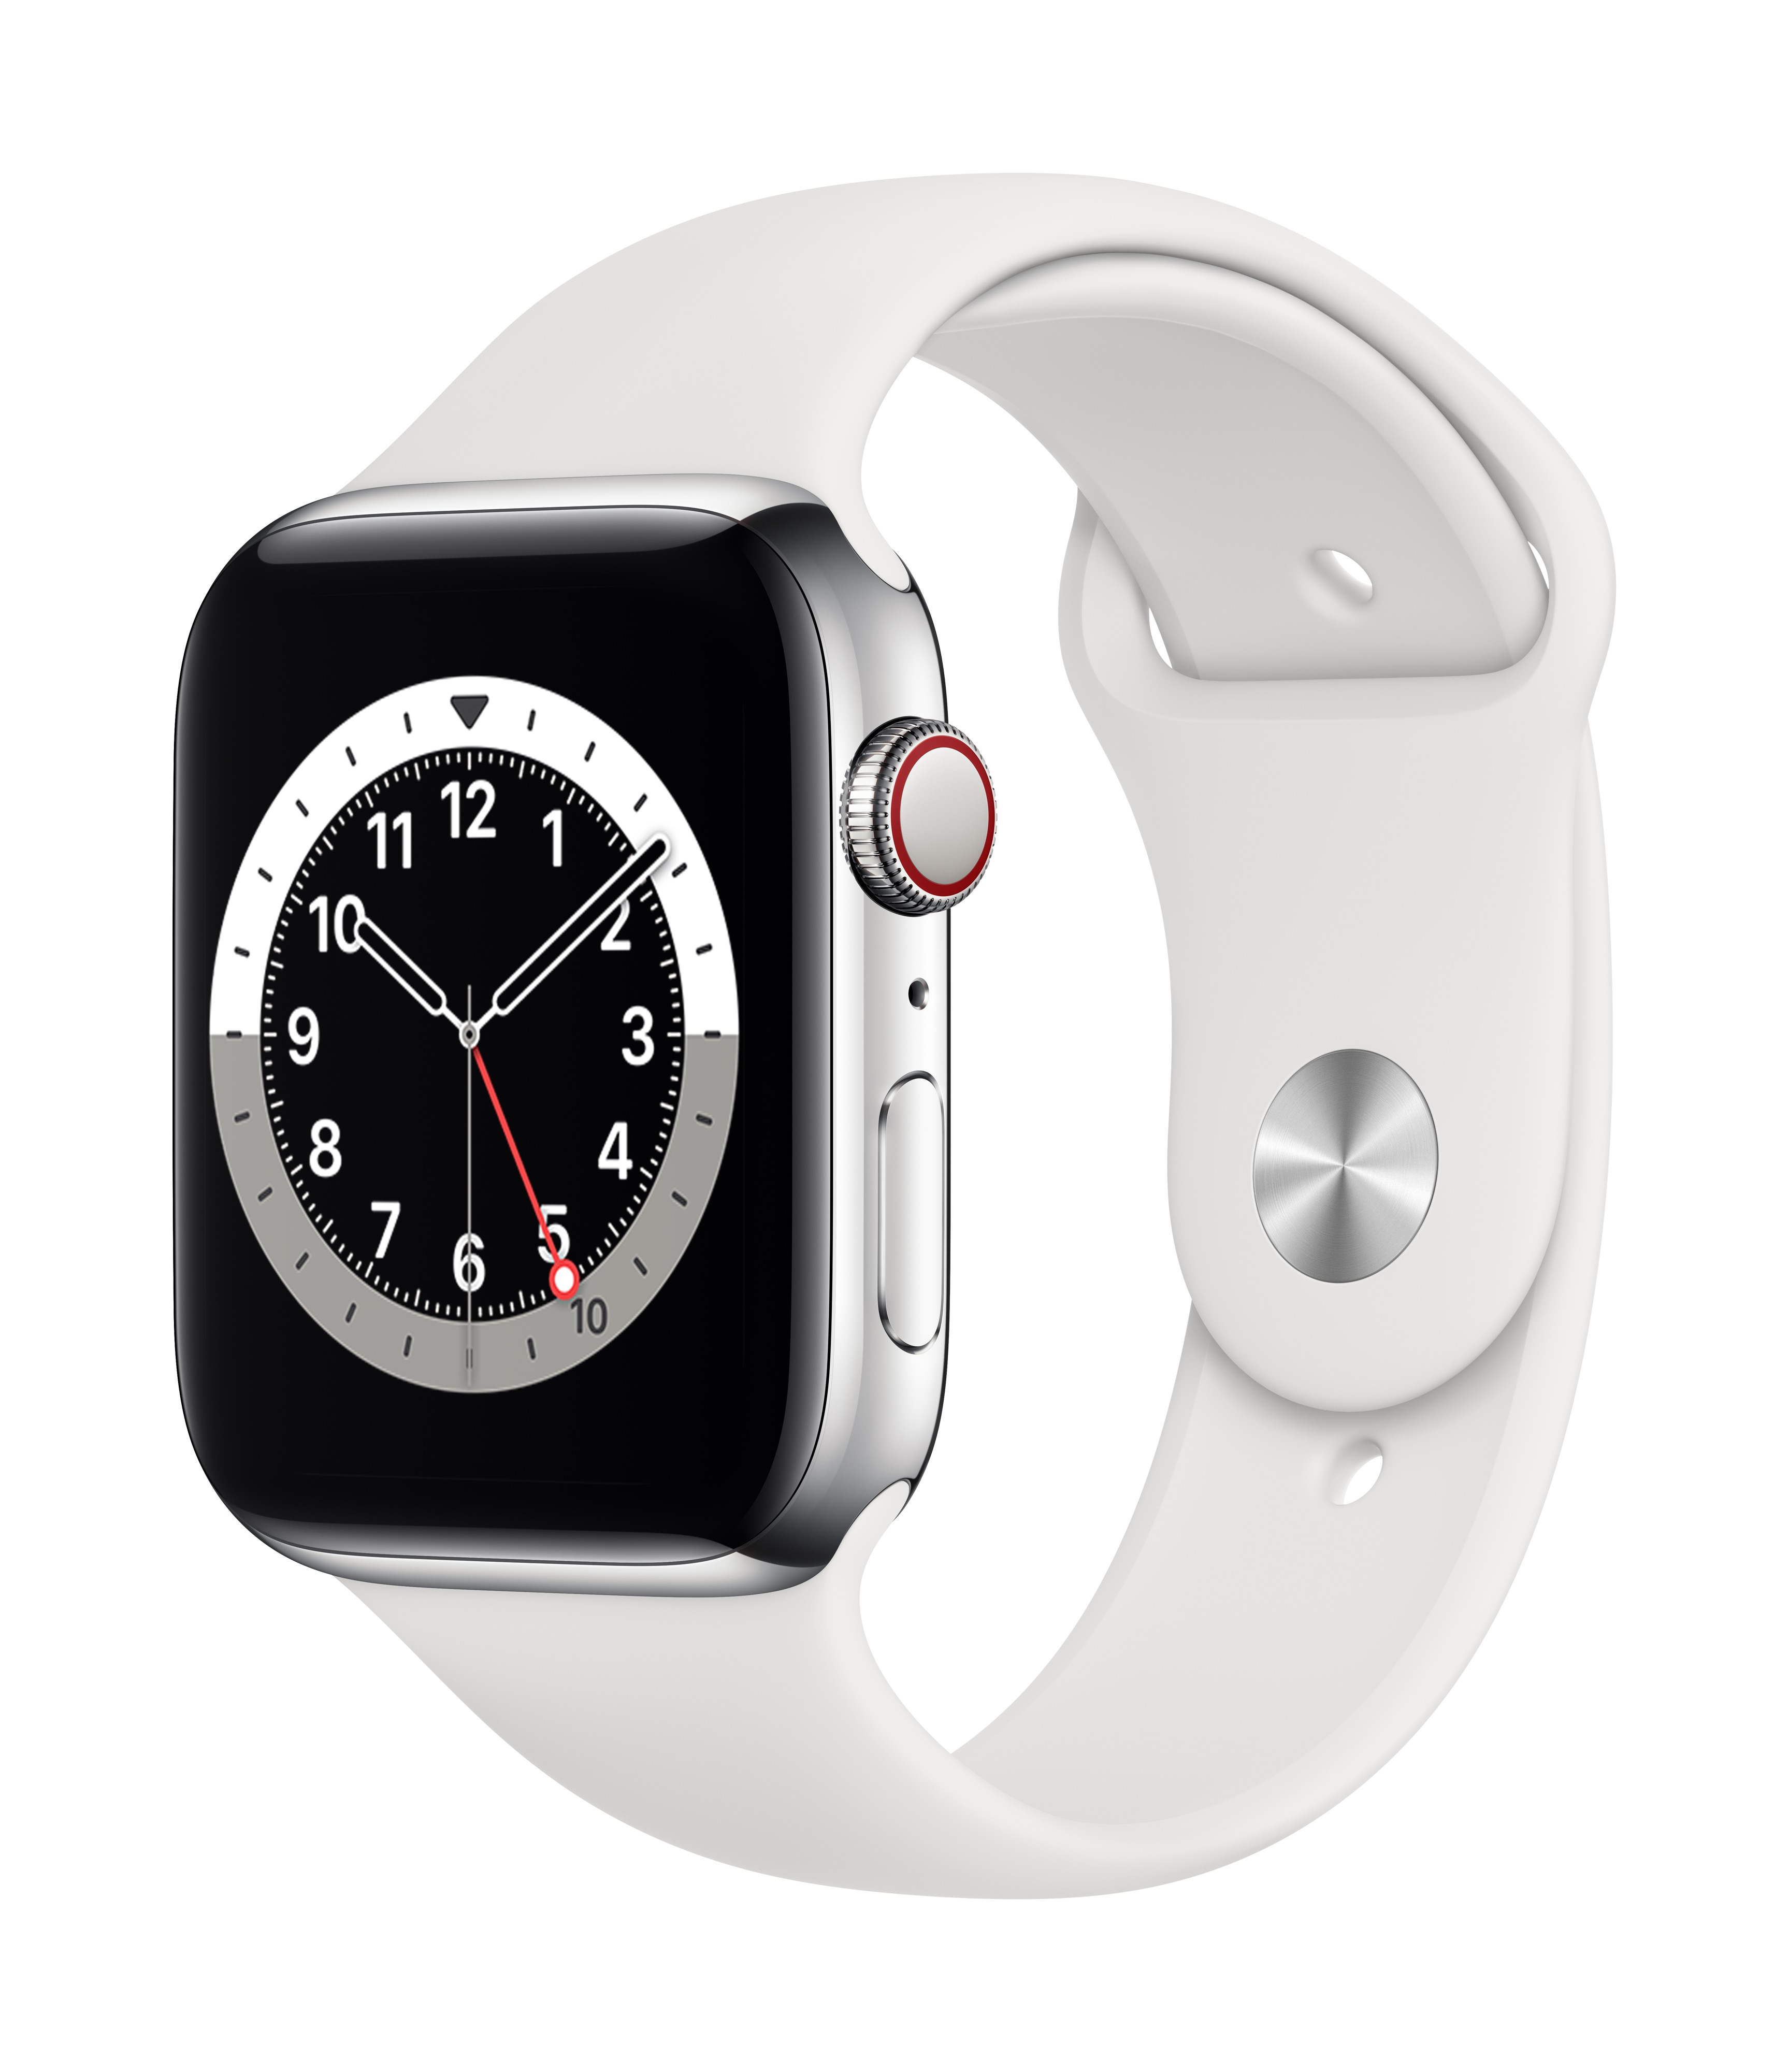 Apple_Watch_Series_6_Cellular_44mm_Silver_Stainless_Steel_White_Sport_Band_34R_Screen__USEN